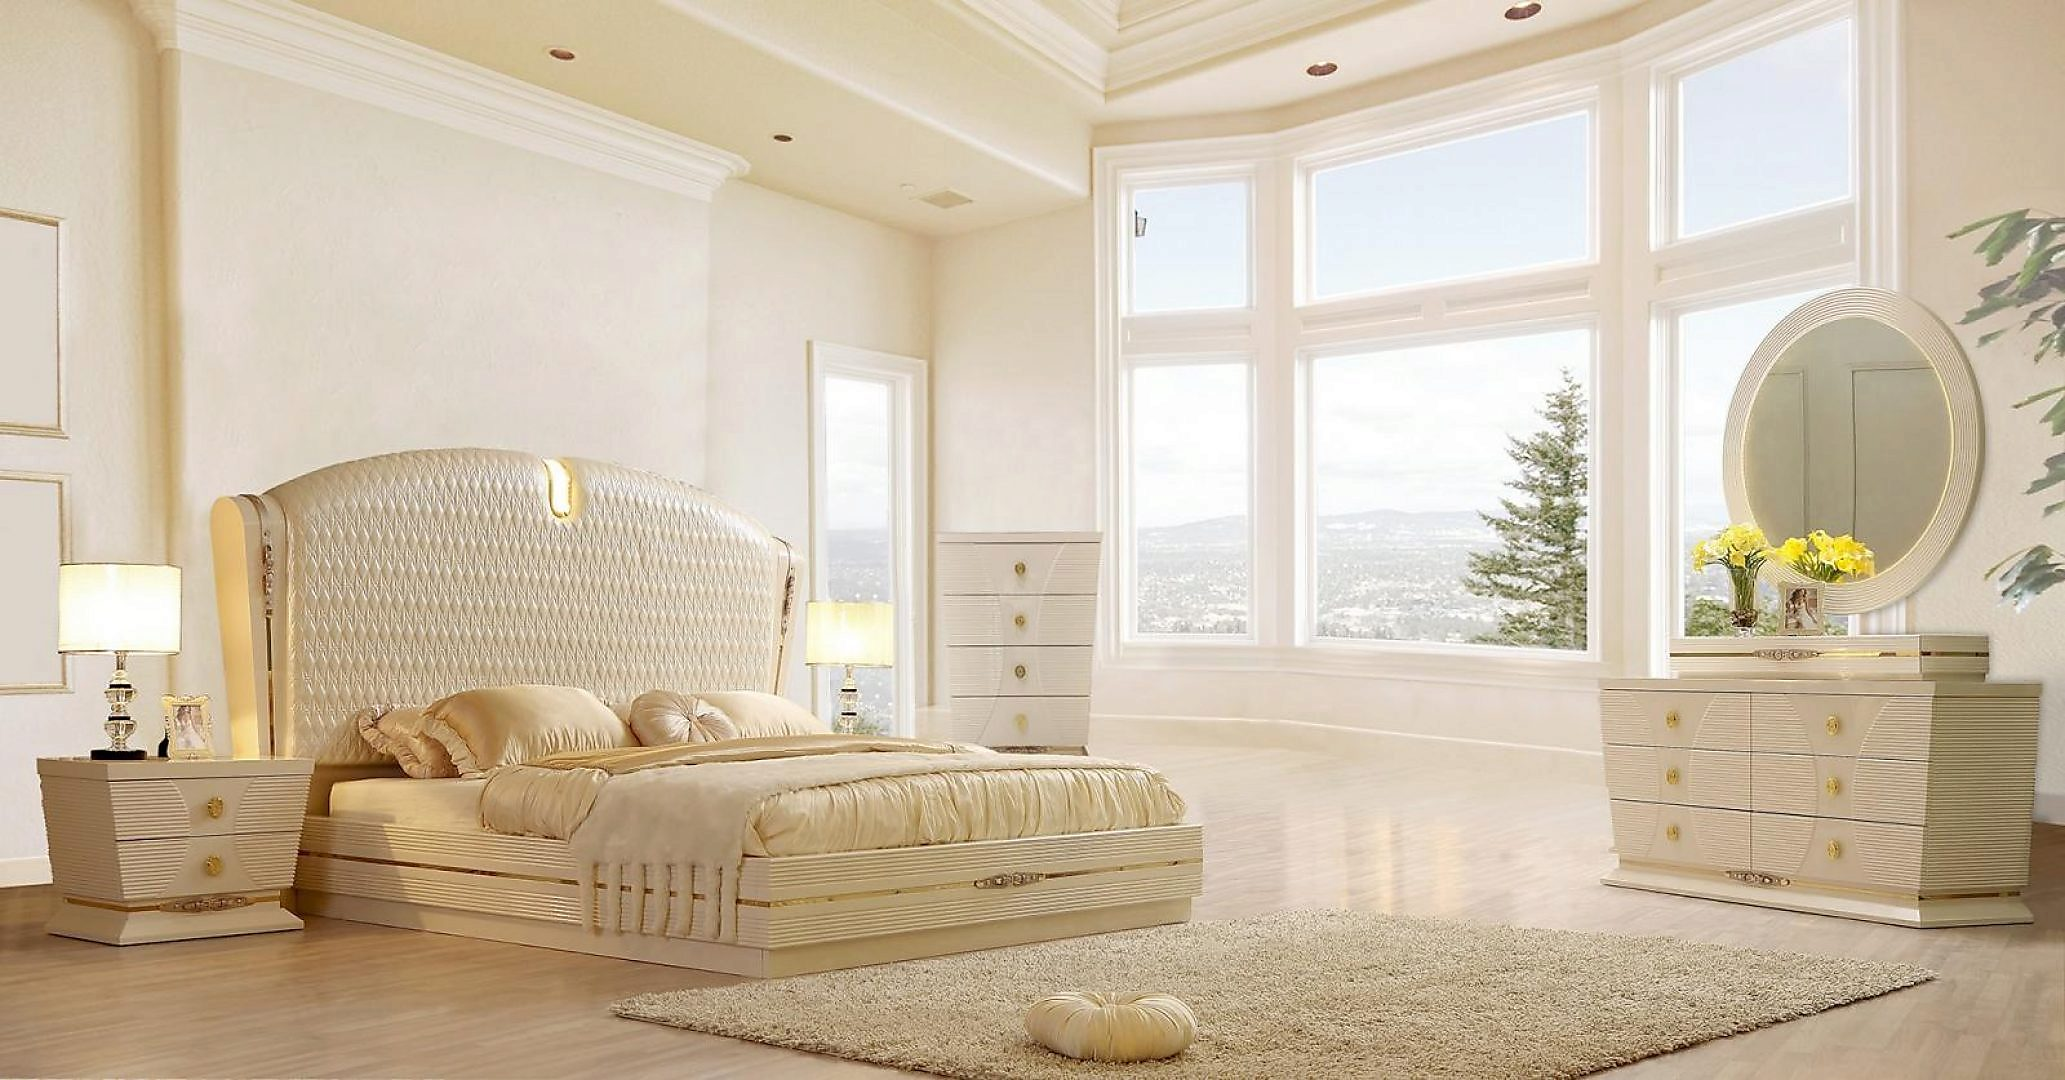 Glossy White Diamond HD-d KING Bedroom Set 6P HD-914 Homey Design Contemporary